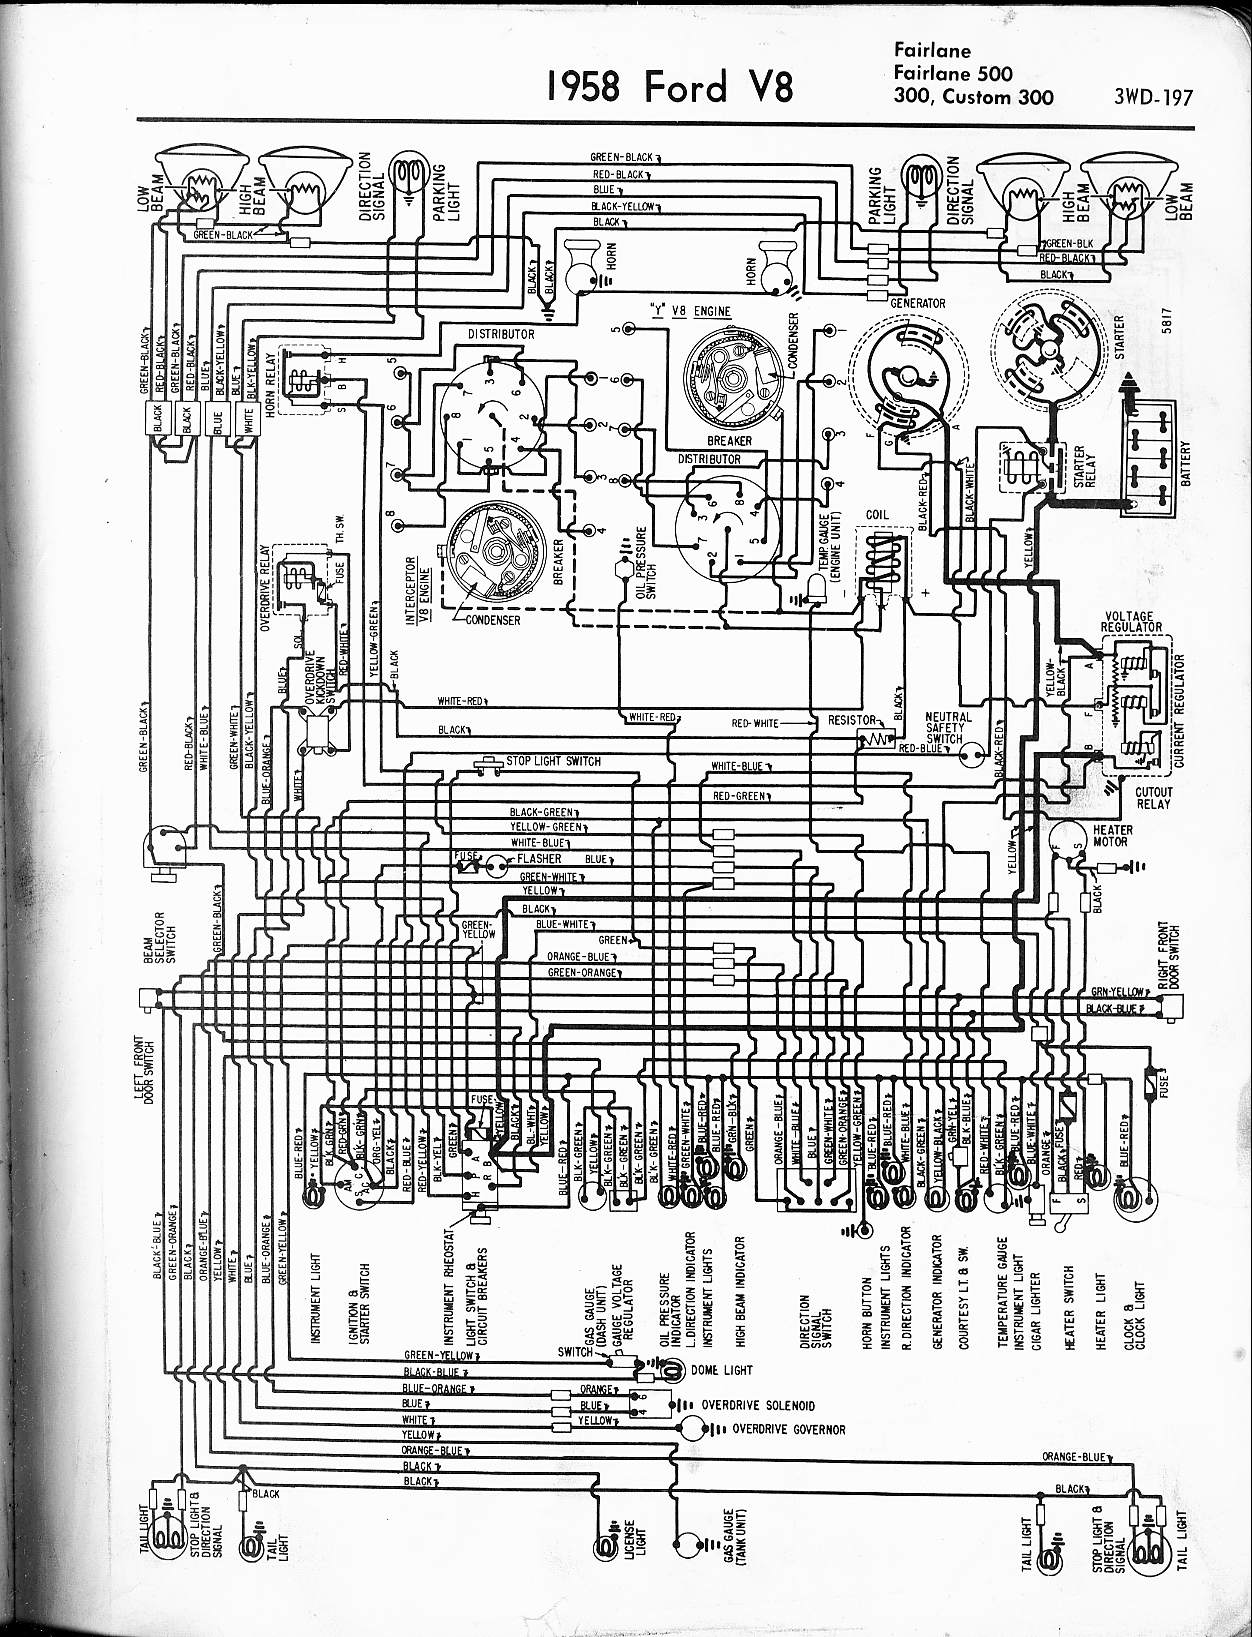 57 65 Ford Wiring Diagrams 2008 Focus Engine Diagram 1958 V8 Fairlane 500 300 Custom